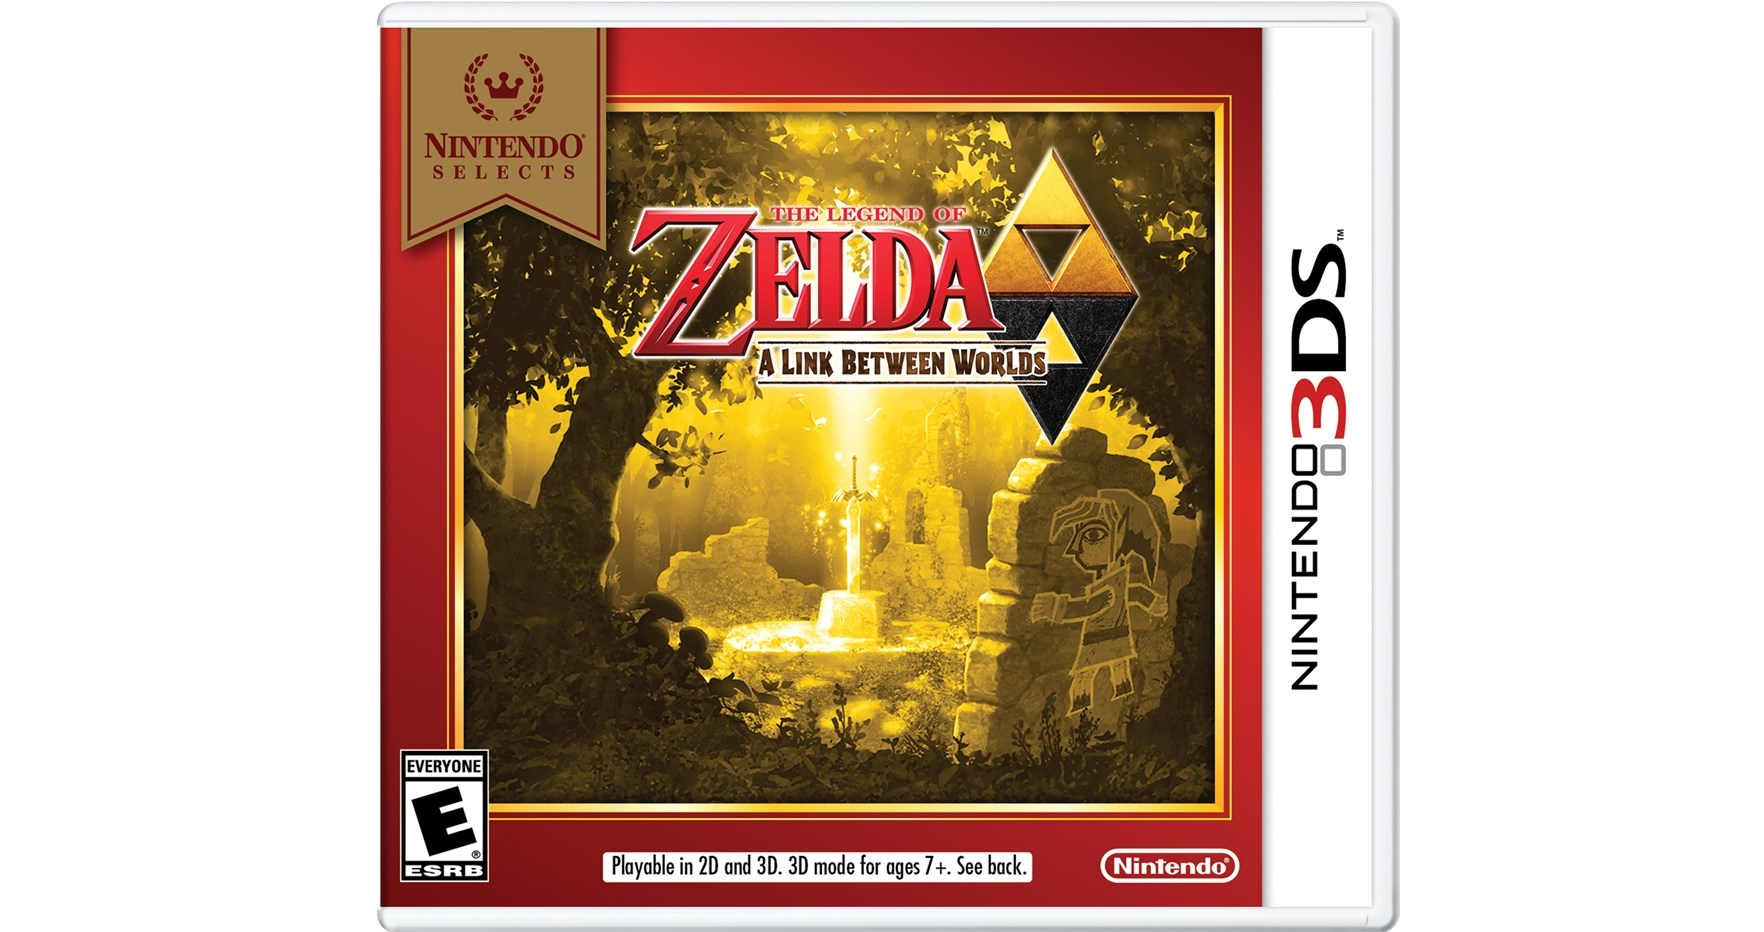 A Link Between Worlds Joins Nintendo Selects Line of Games, Available for $19.99 on February 5th